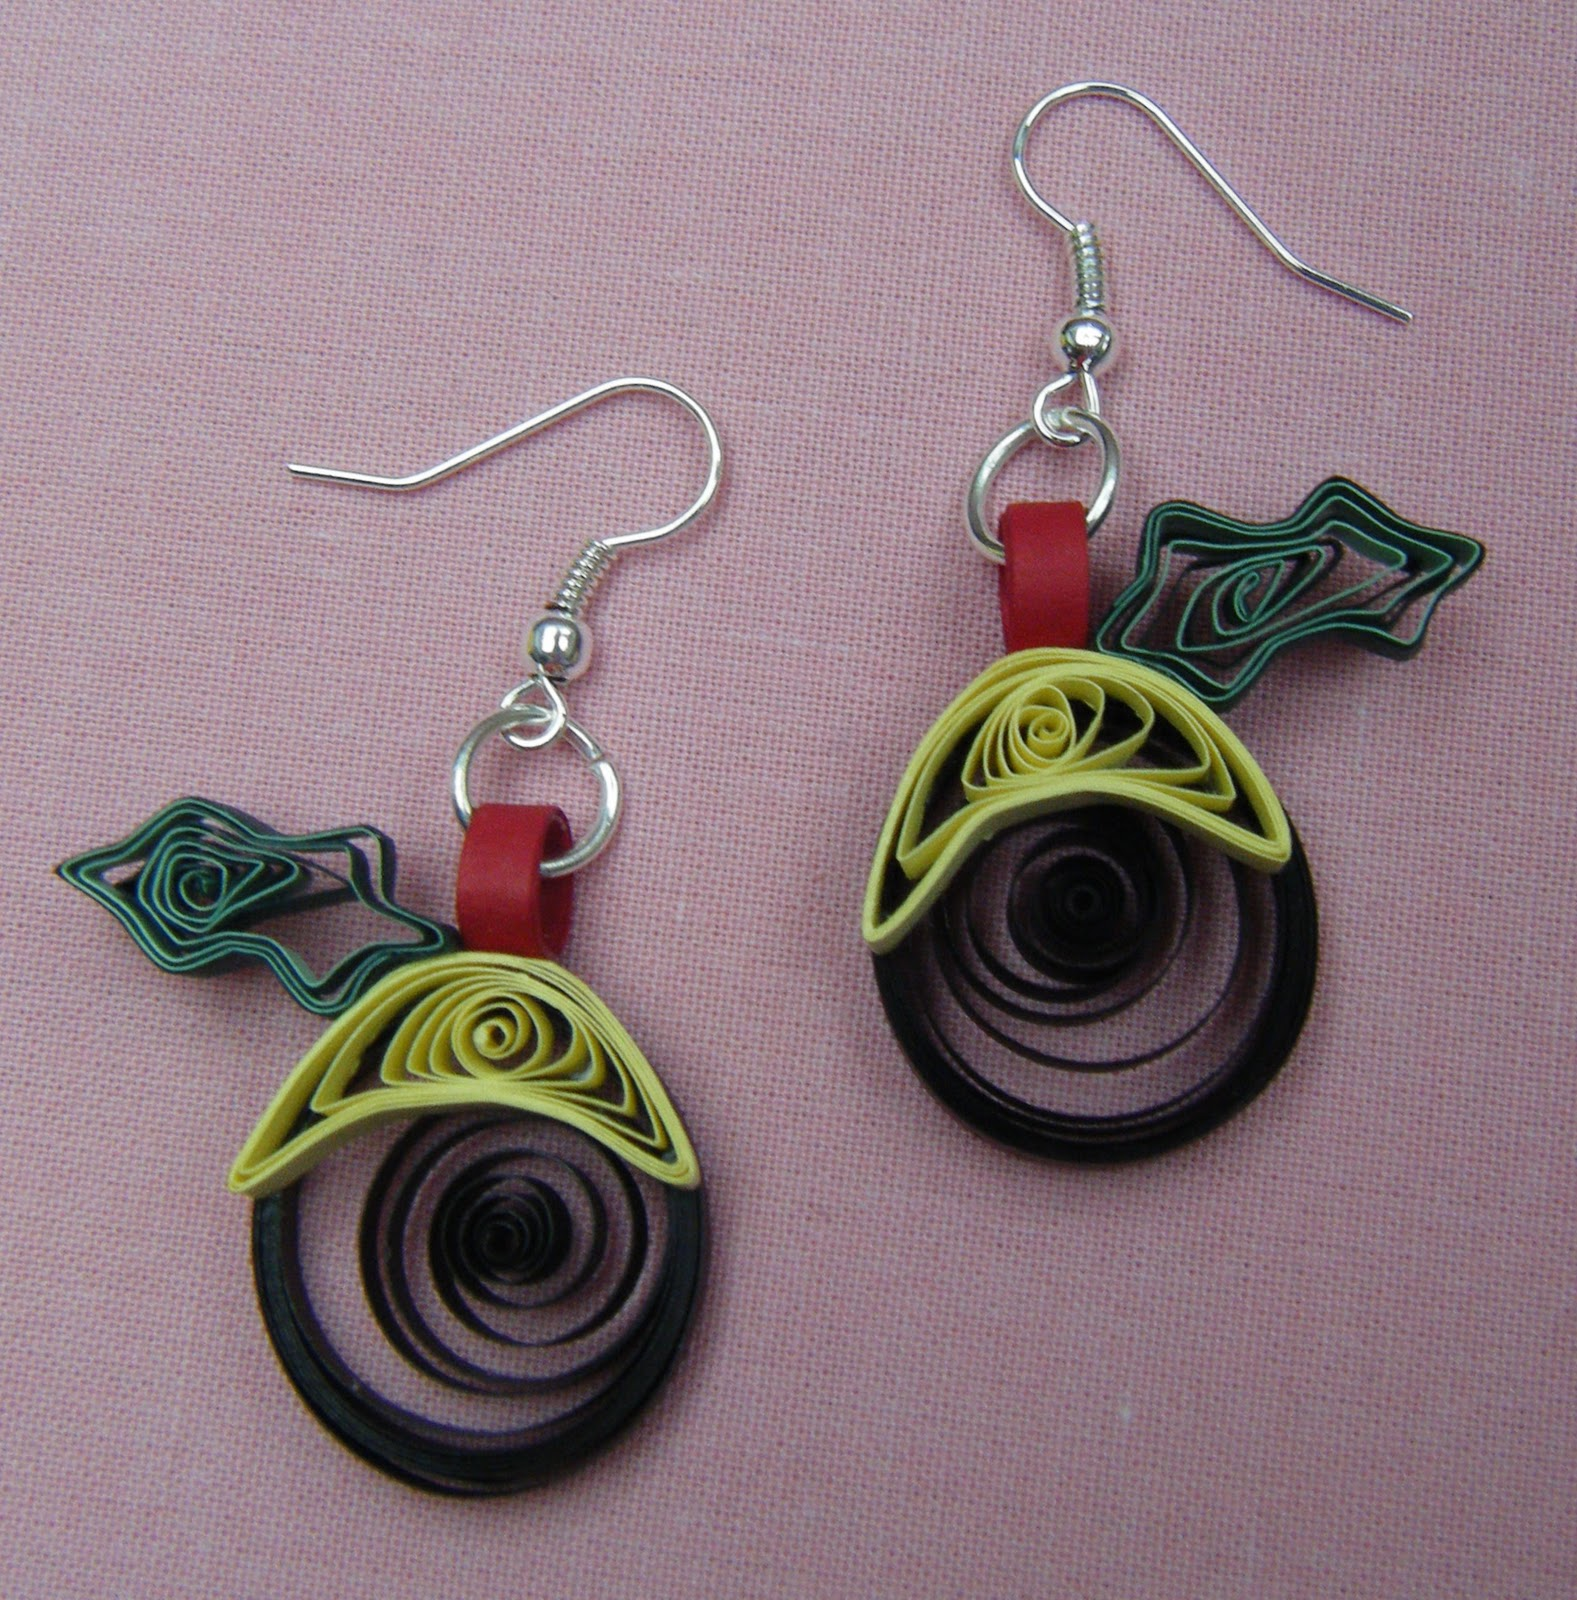 Quilling Papers Earrings: Quilliance: 'Tis The Season To Quill Earrings